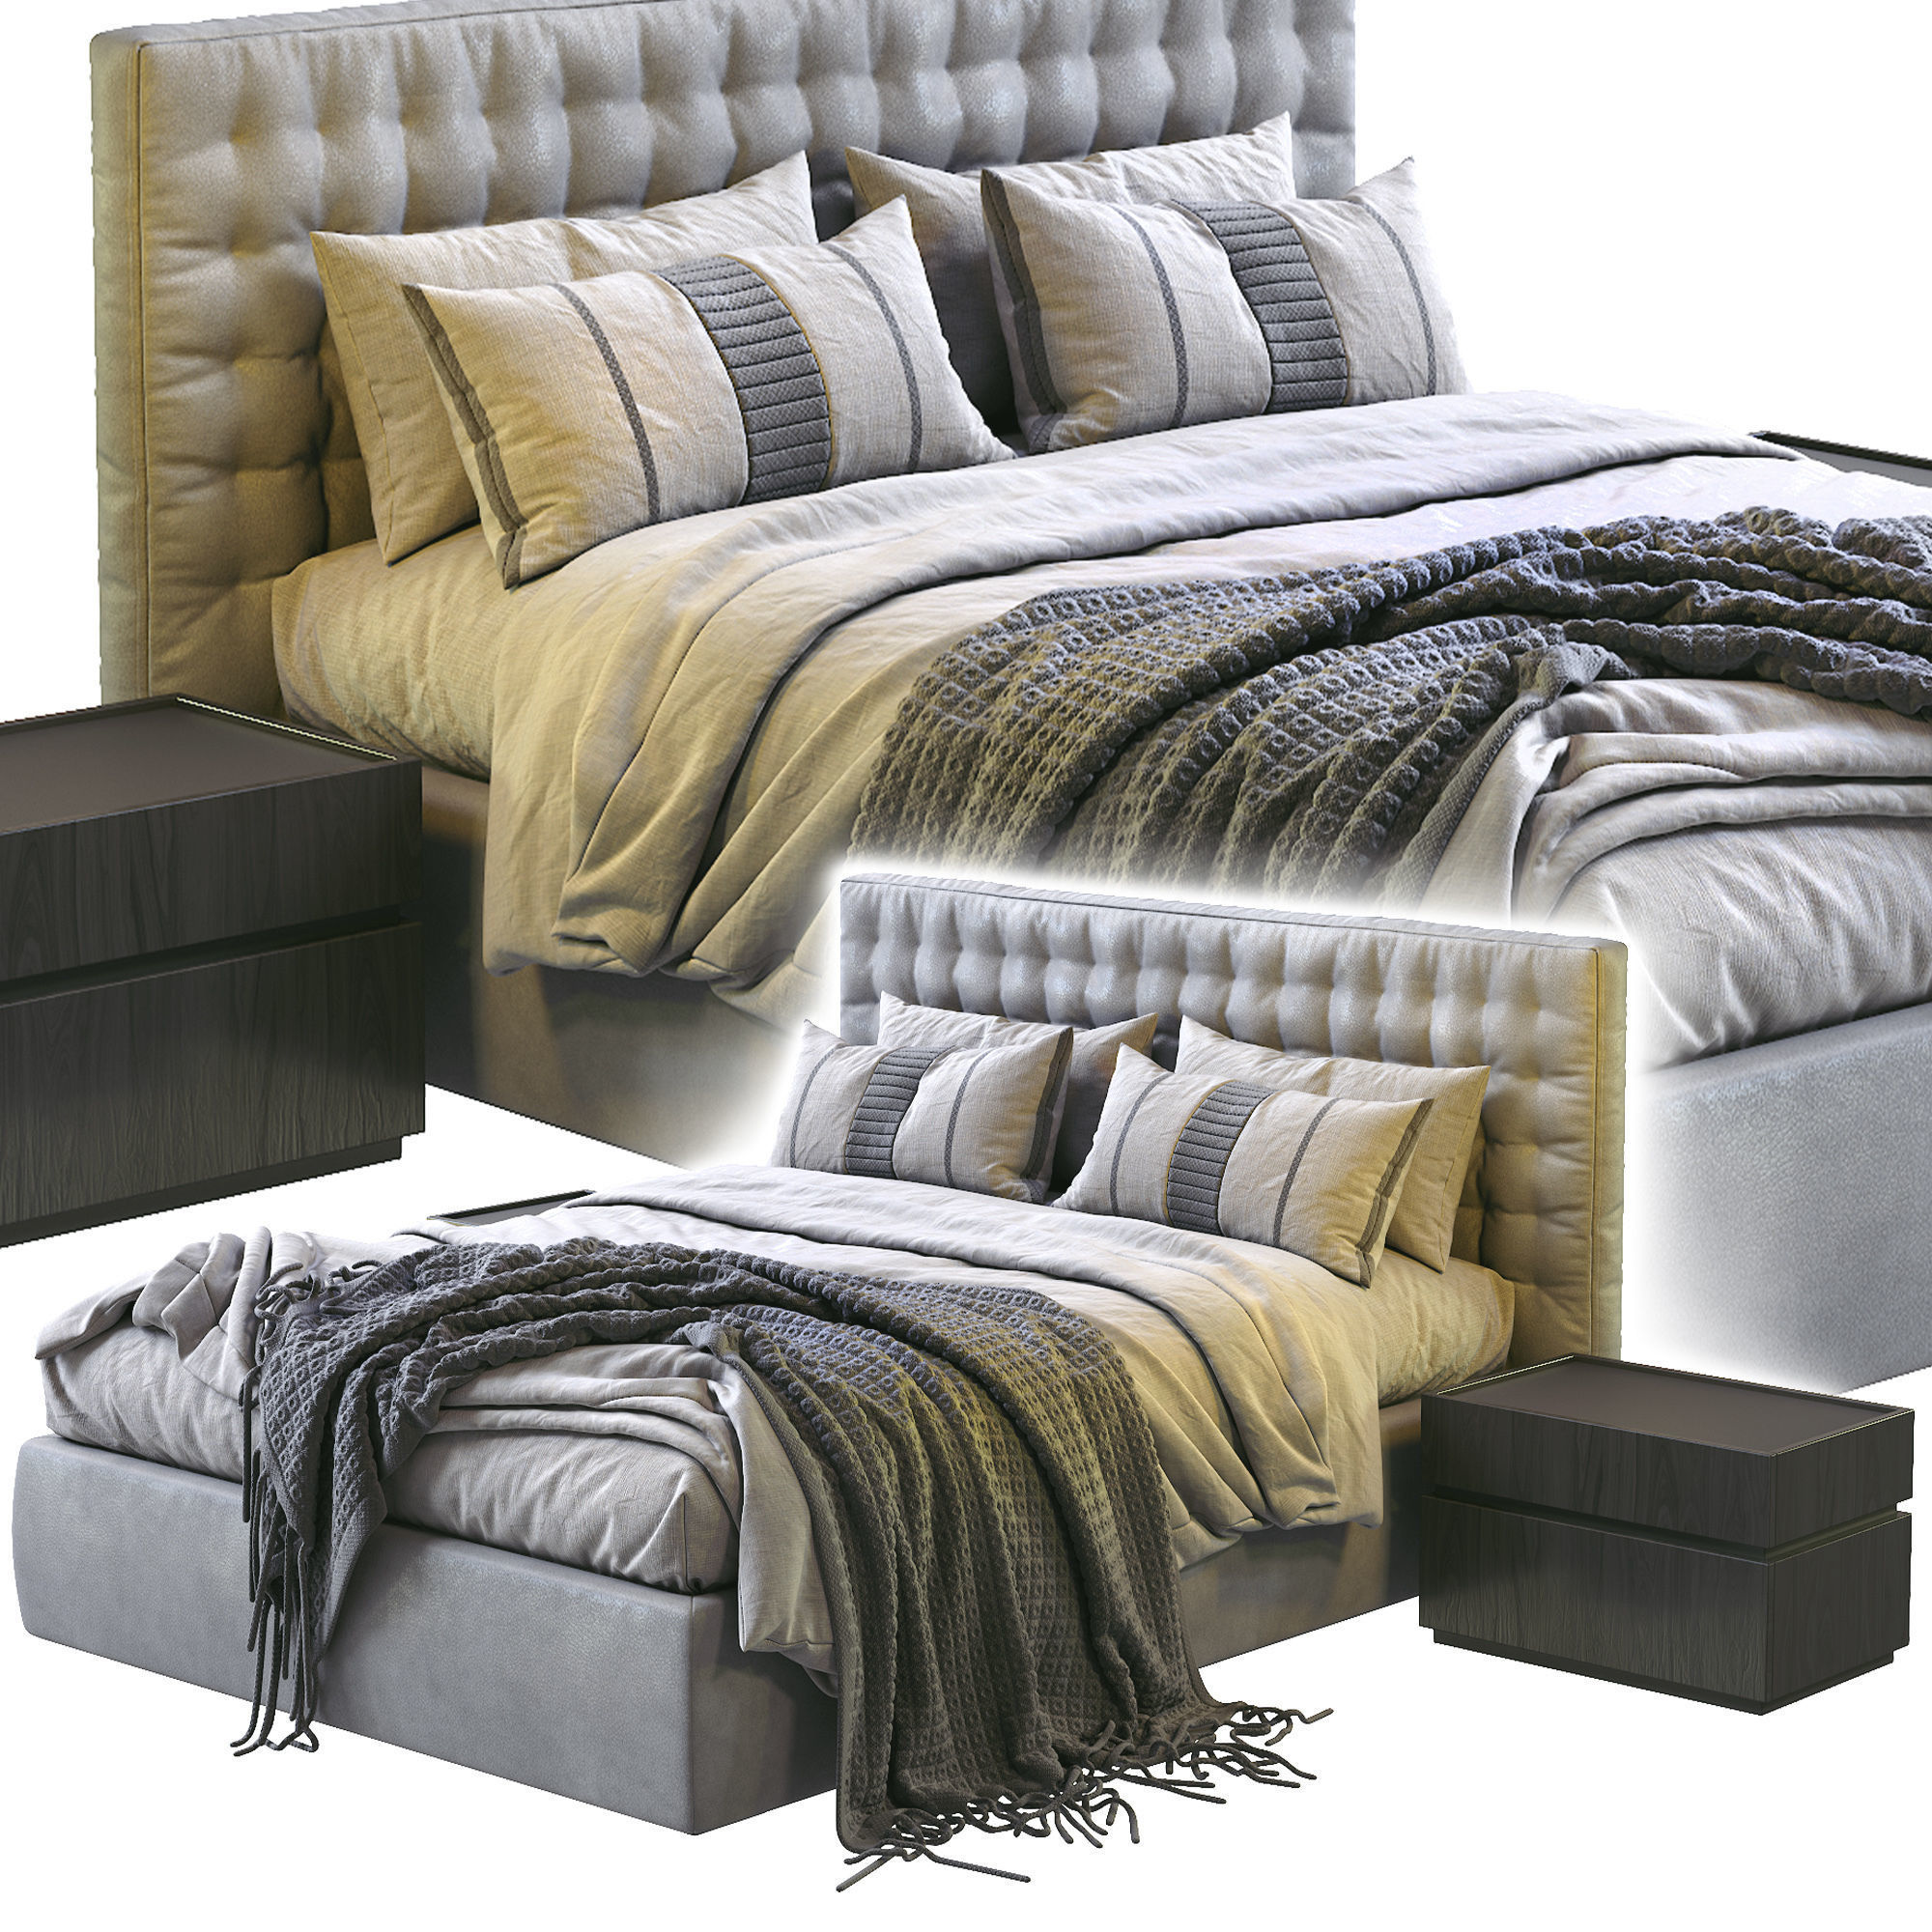 Md House Leather Bed LINE